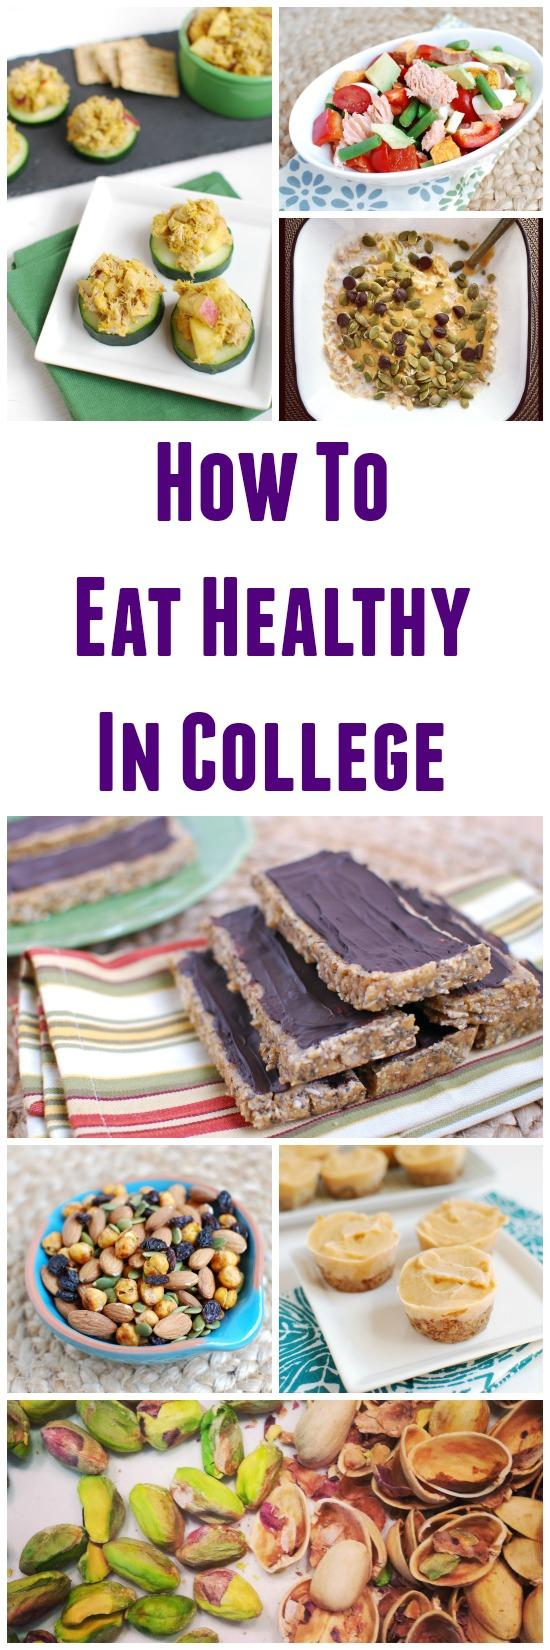 Real College Student of Atlanta: Healthy grocery shopping ... |Food Ideas For College Students